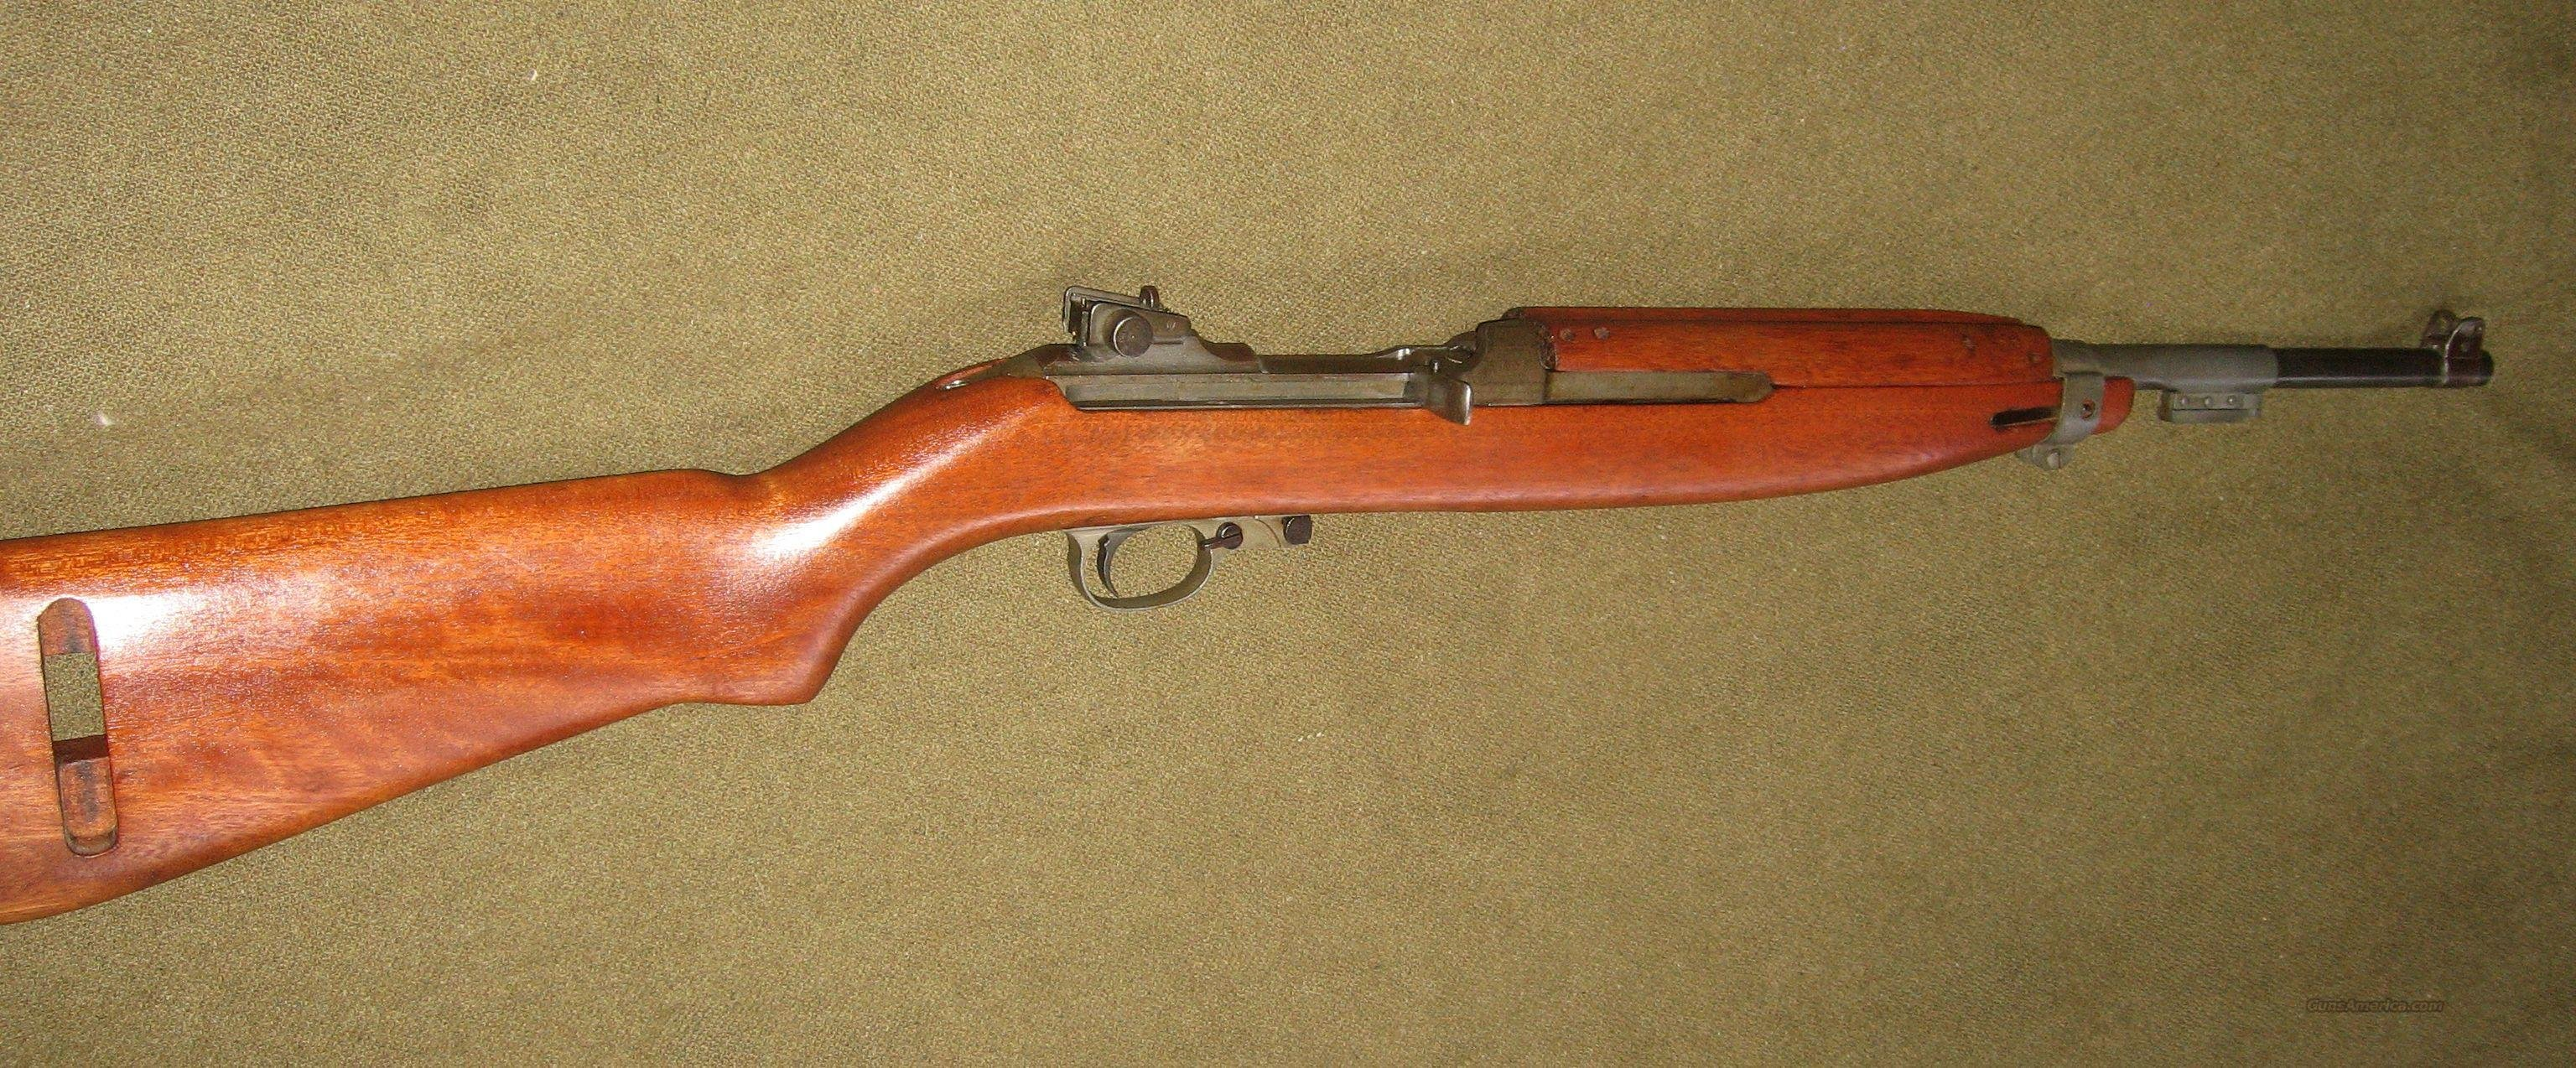 M1 carbine, Winchester 6.53M Late model M-1  Guns > Rifles > Military Misc. Rifles US > M1 Carbine